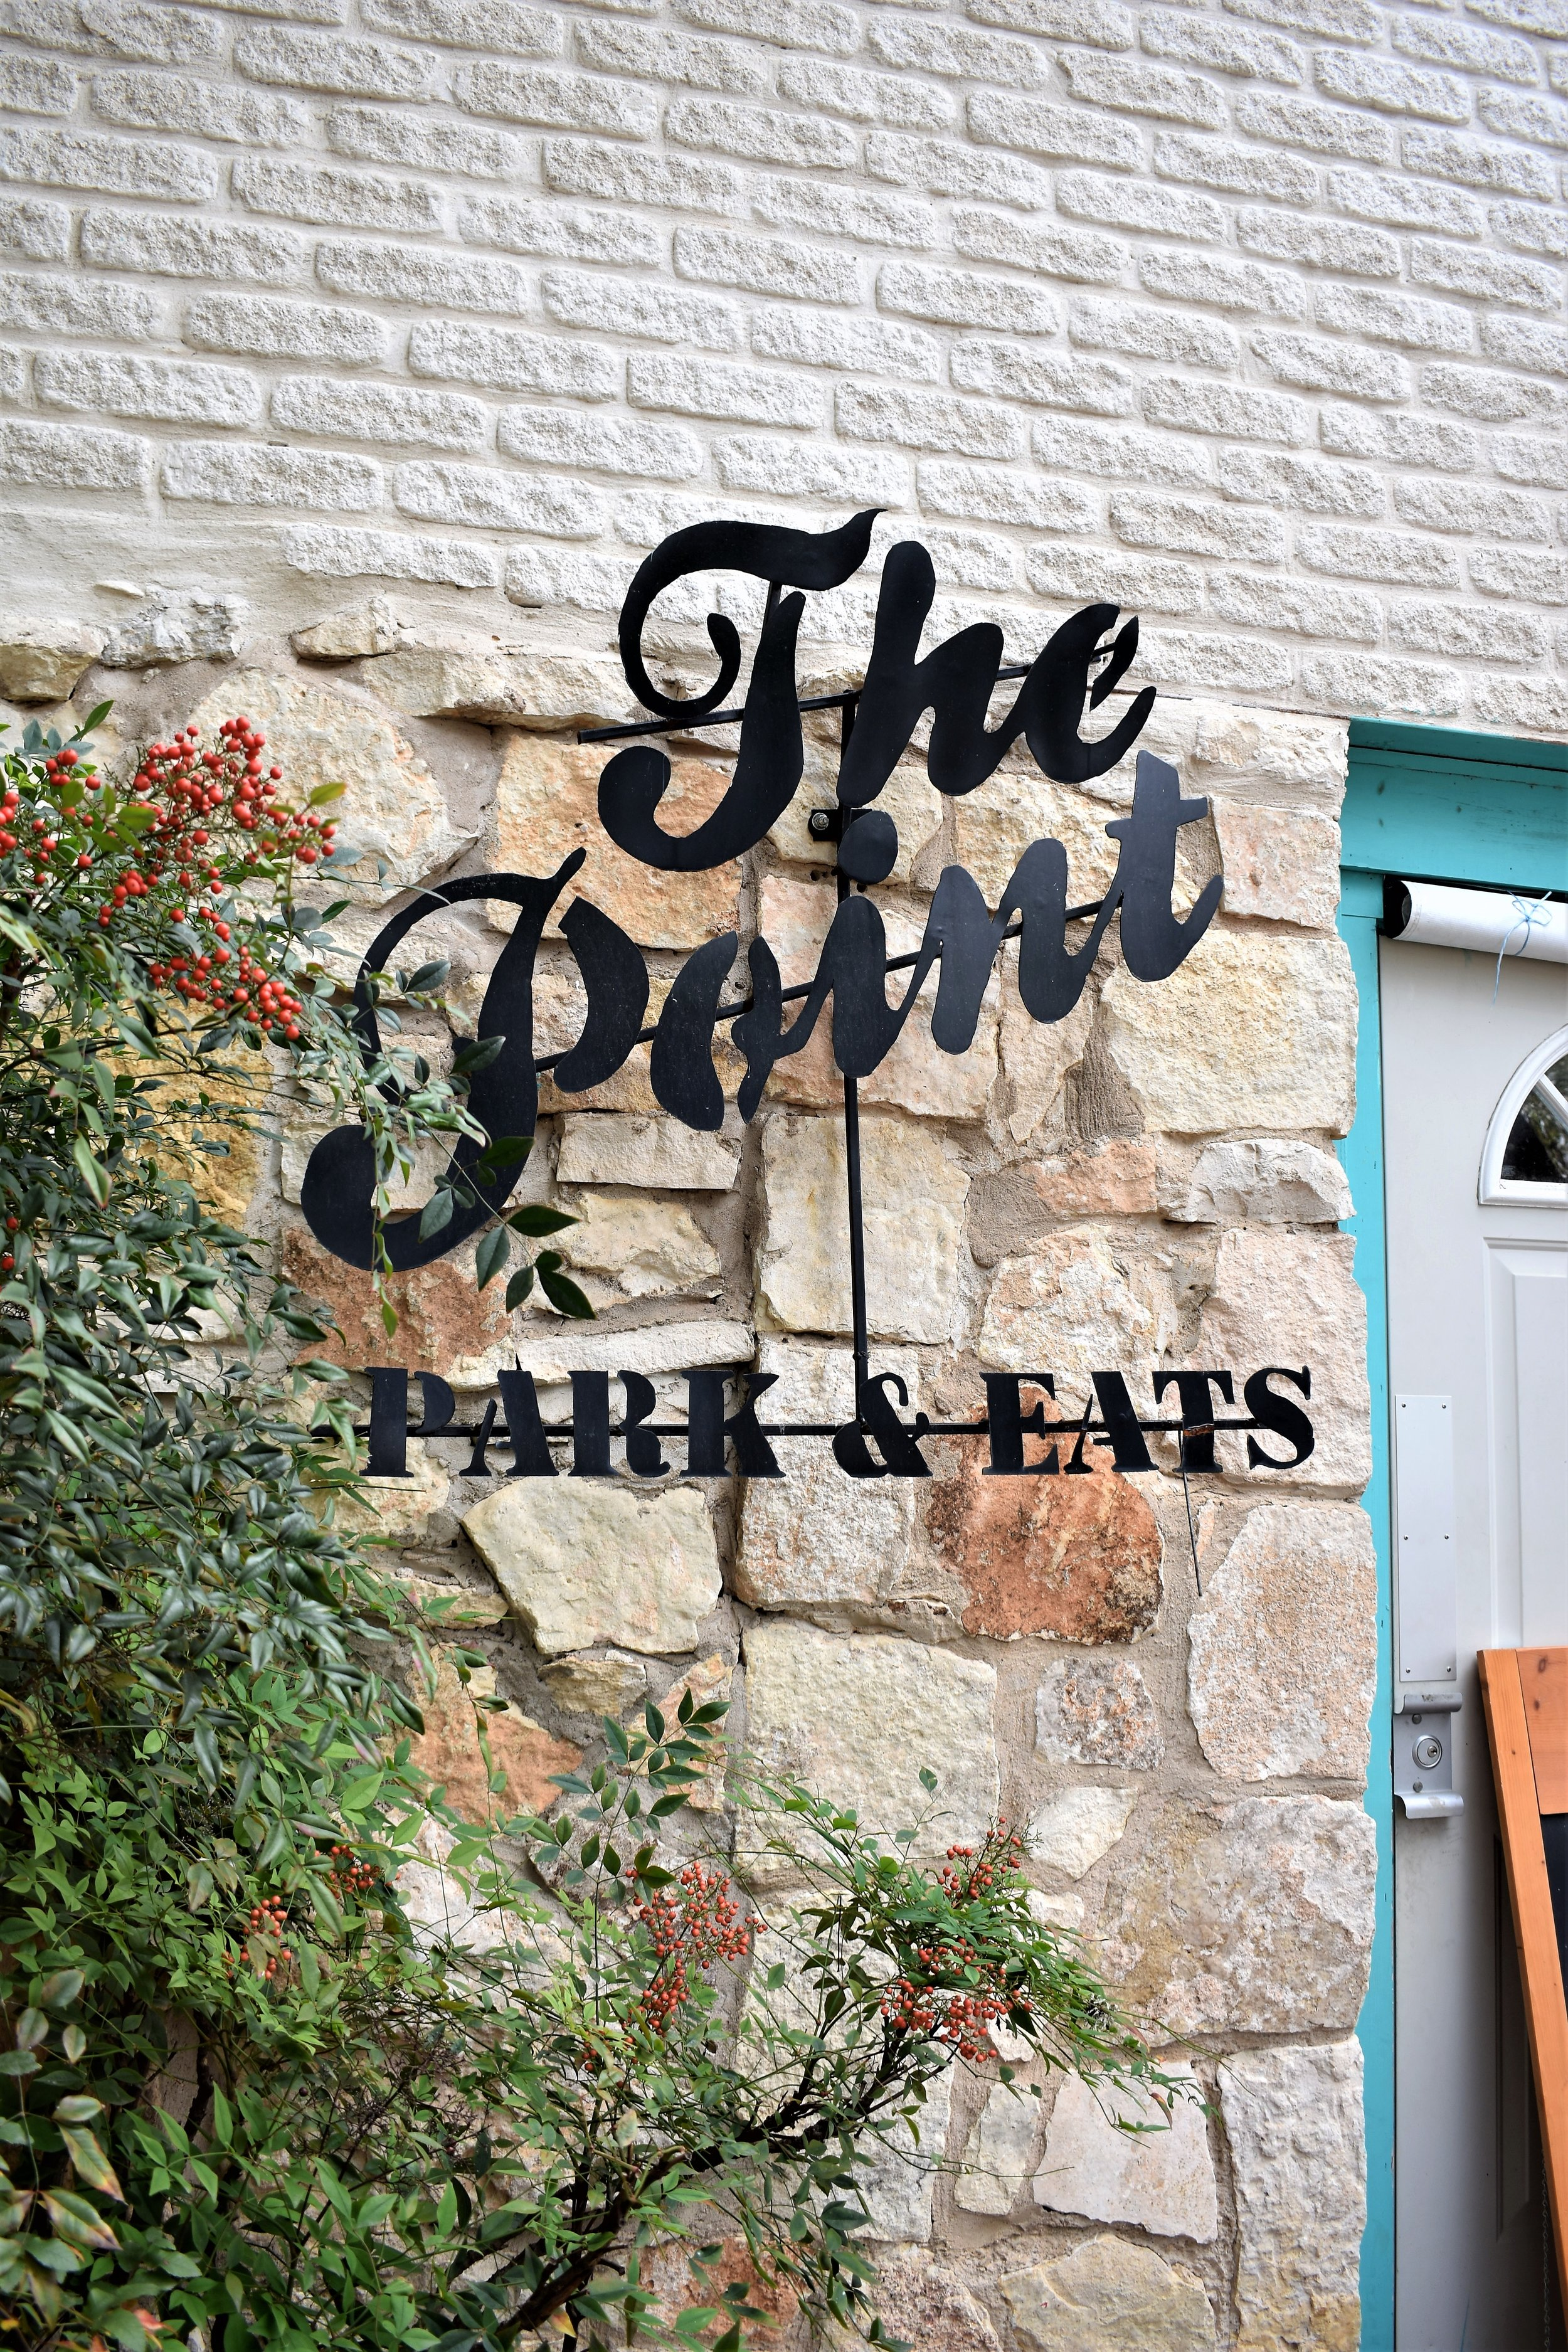 the point park & eats family friendly restaurant boerne san antonio texas sowing seeds blog